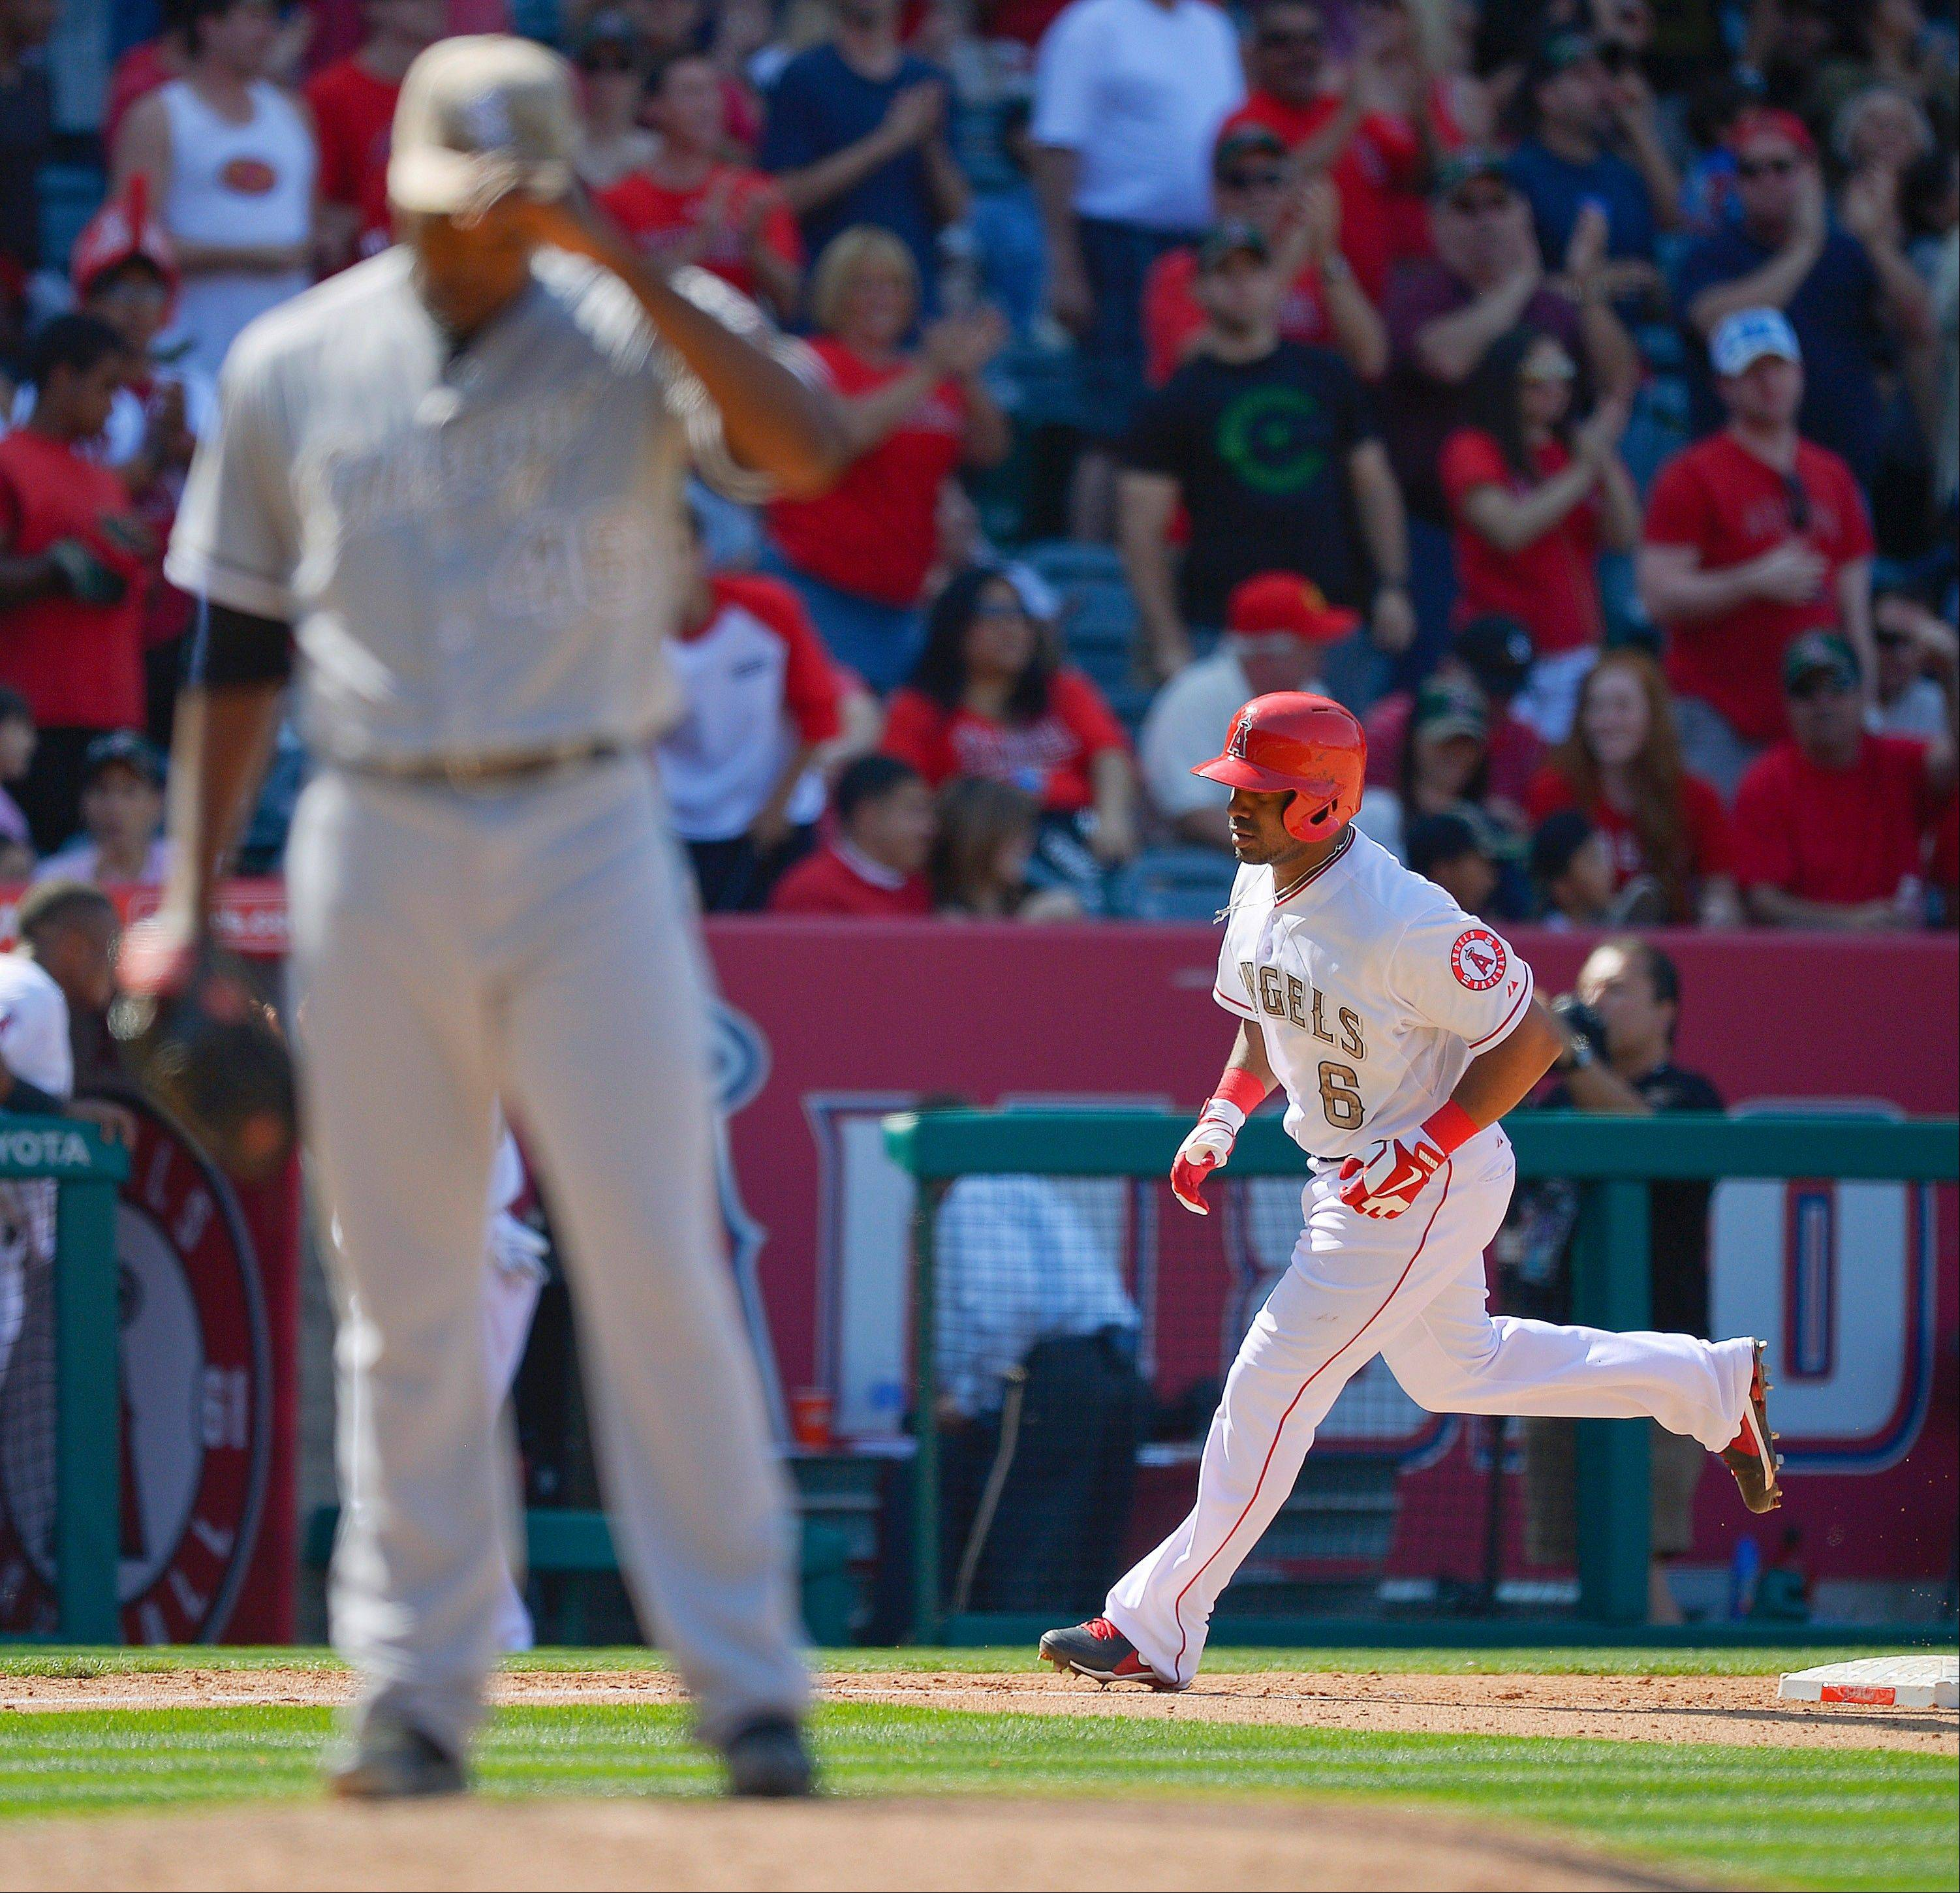 Los Angeles Angels' Alberto Callaspo (6) rounds the bases on a three-run home run off Chicago White Sox relief pitcher Donnie Veal, foreground, during the seventh inning of a baseball game, Saturday, May 18, 2013, in Anaheim, Calif. (AP Photo/Mark J. Terrill)